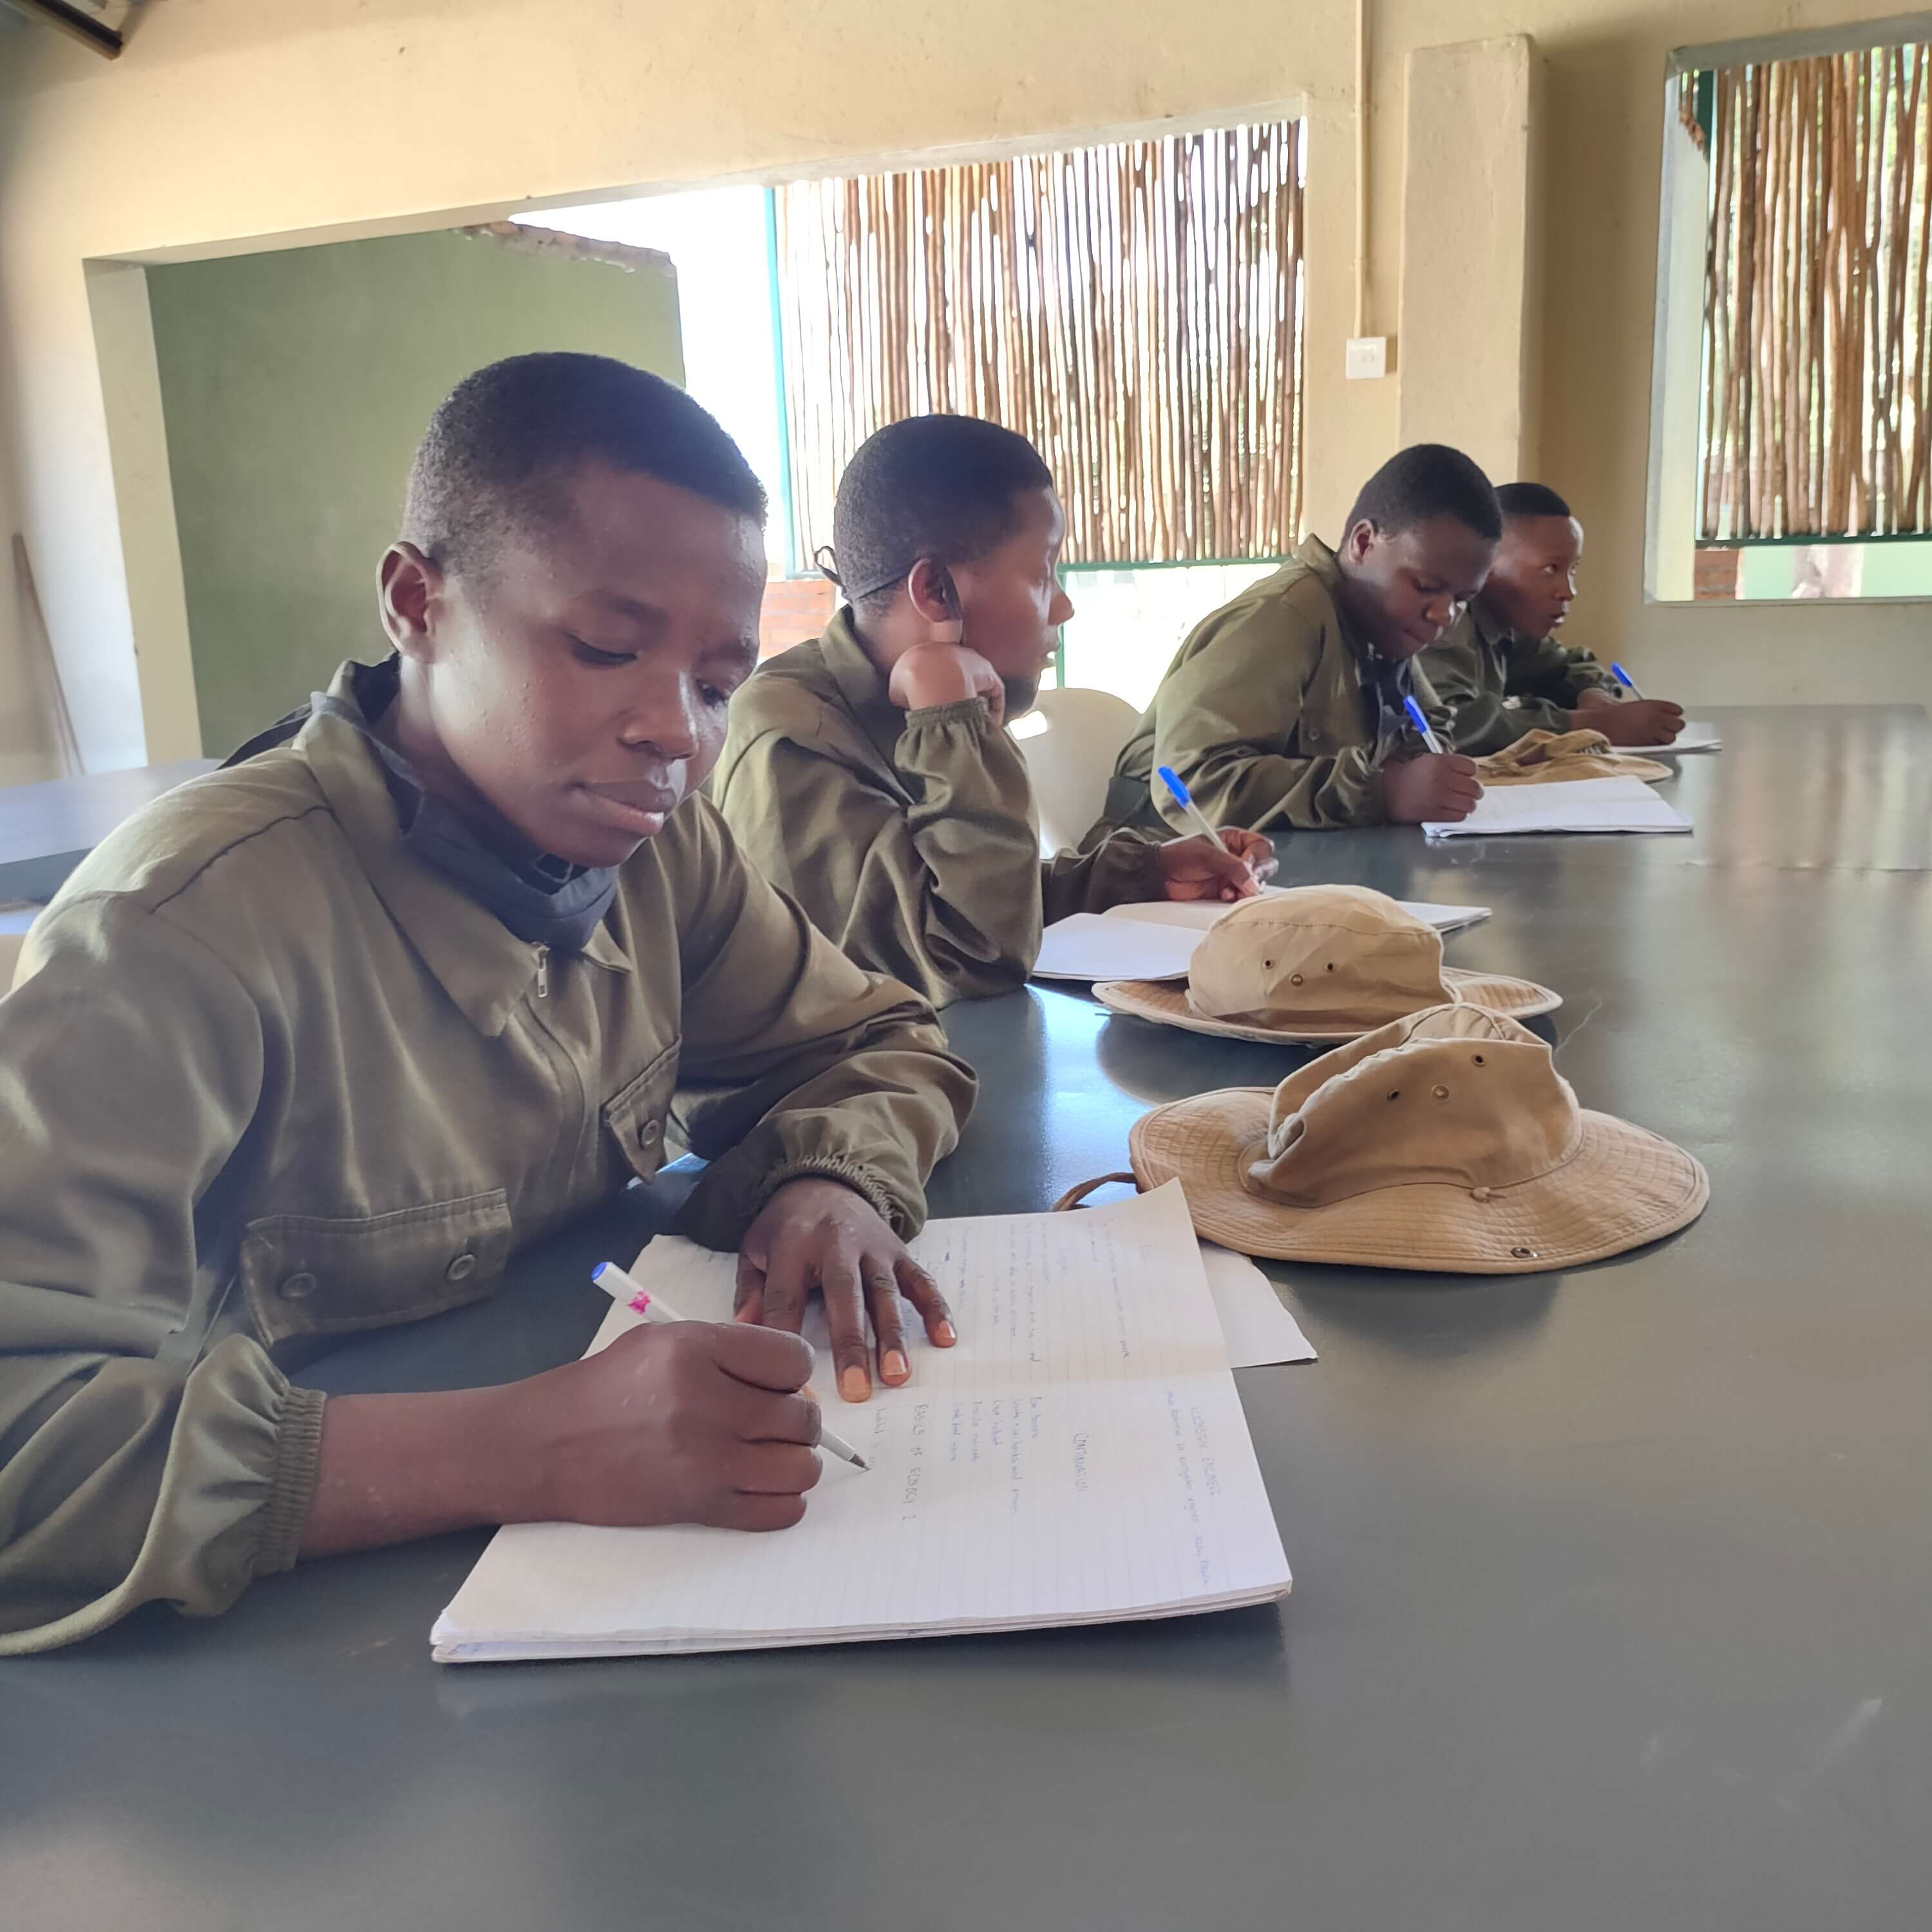 Rangers in the classroom